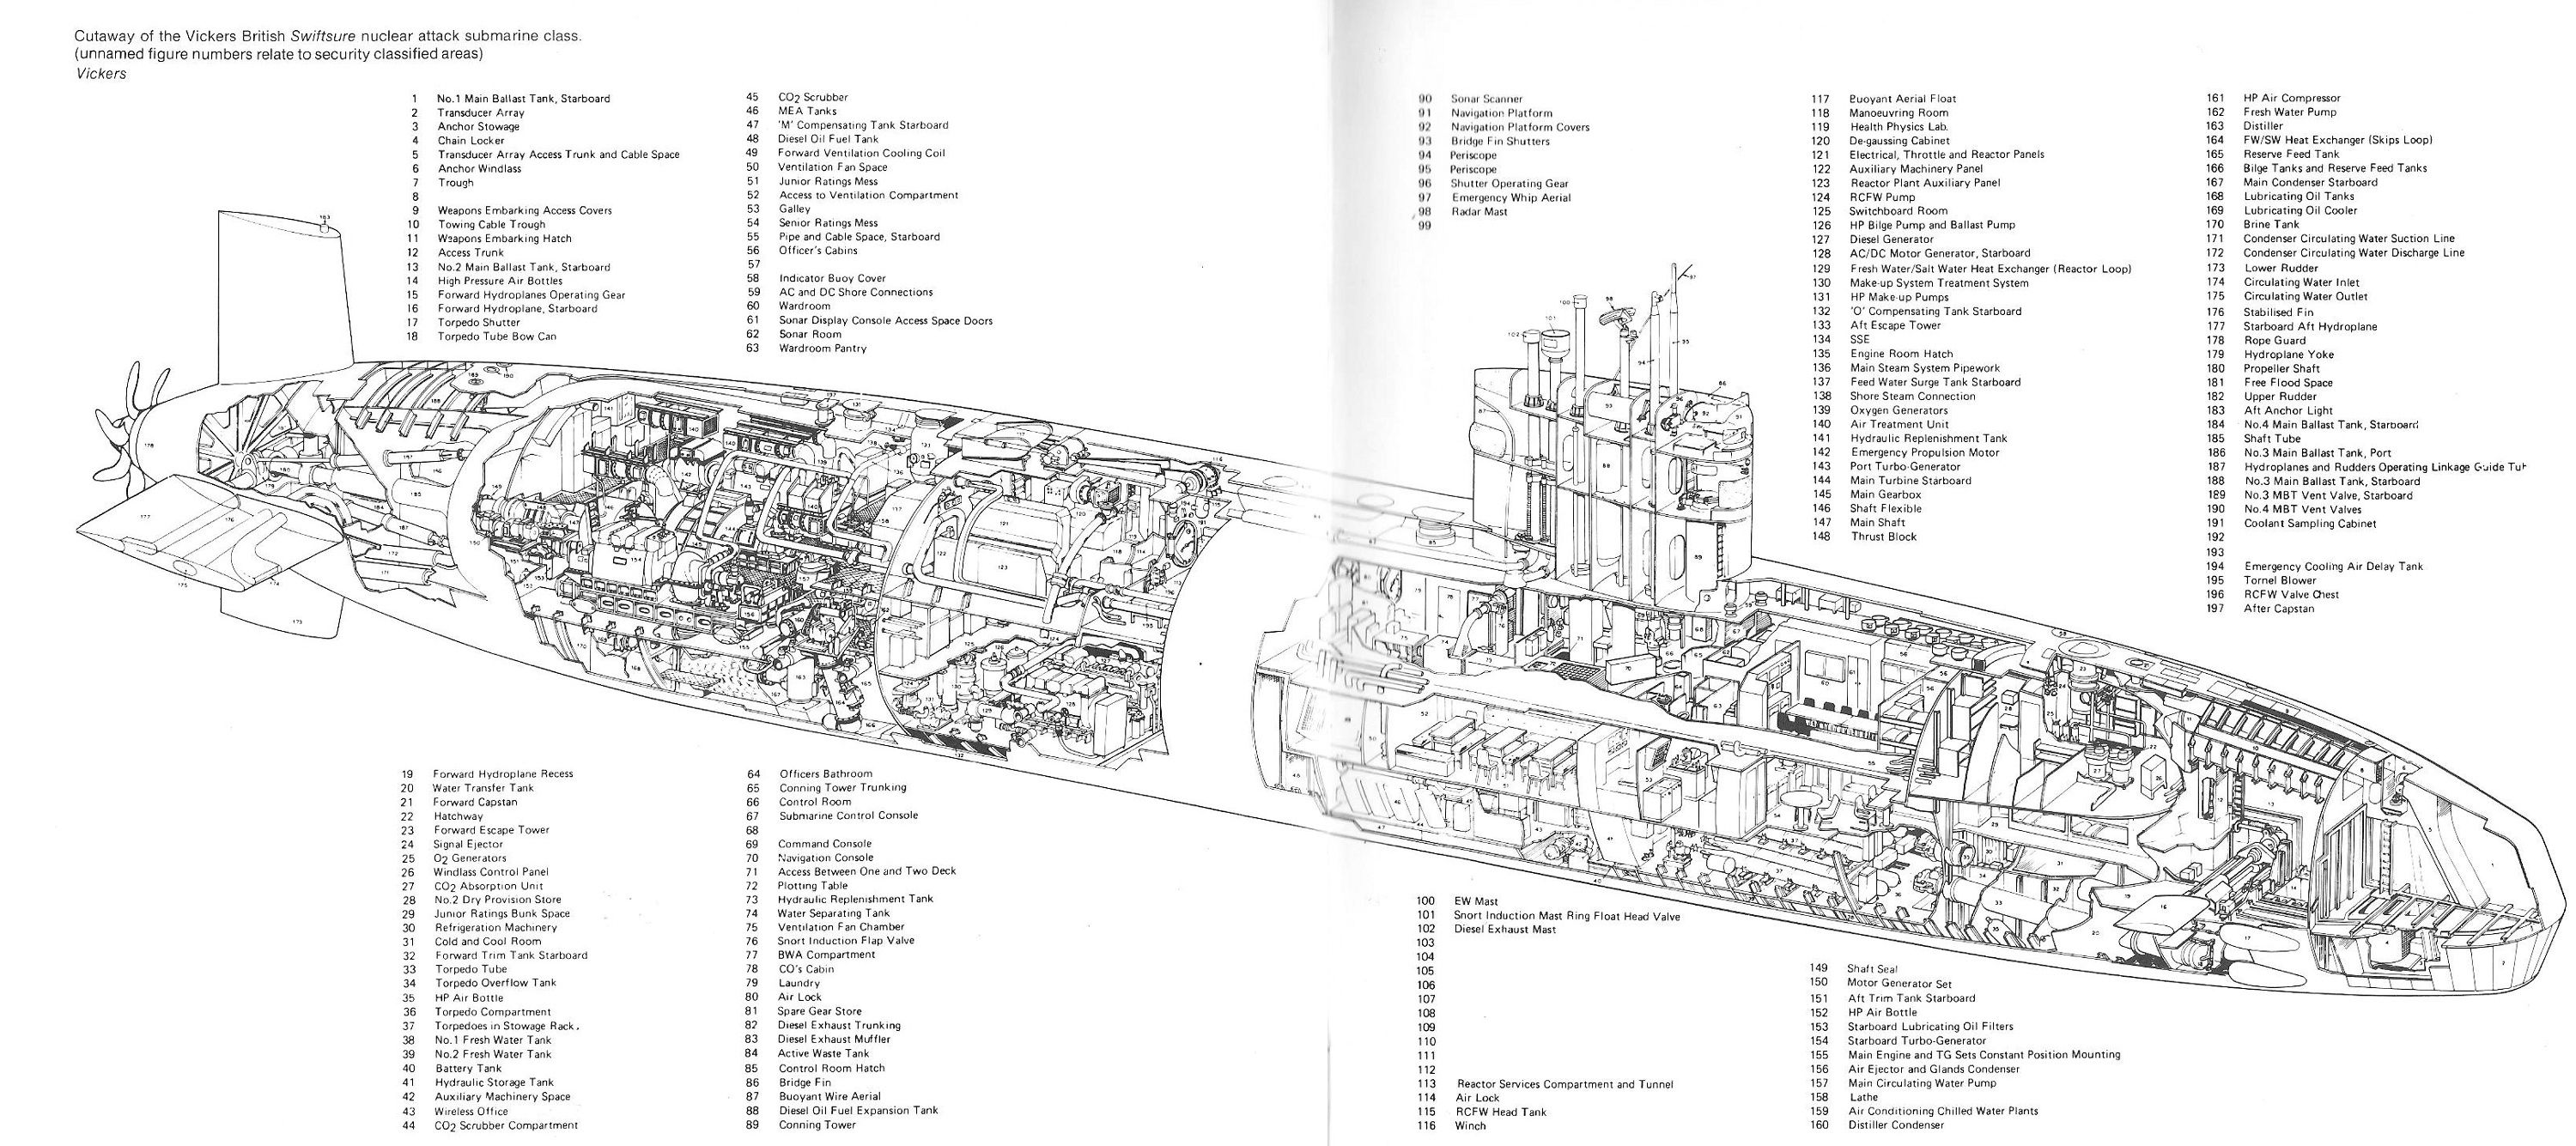 hight resolution of anatomy of a swiftsure class ssn submarines cutaway anatomy anatomy reference